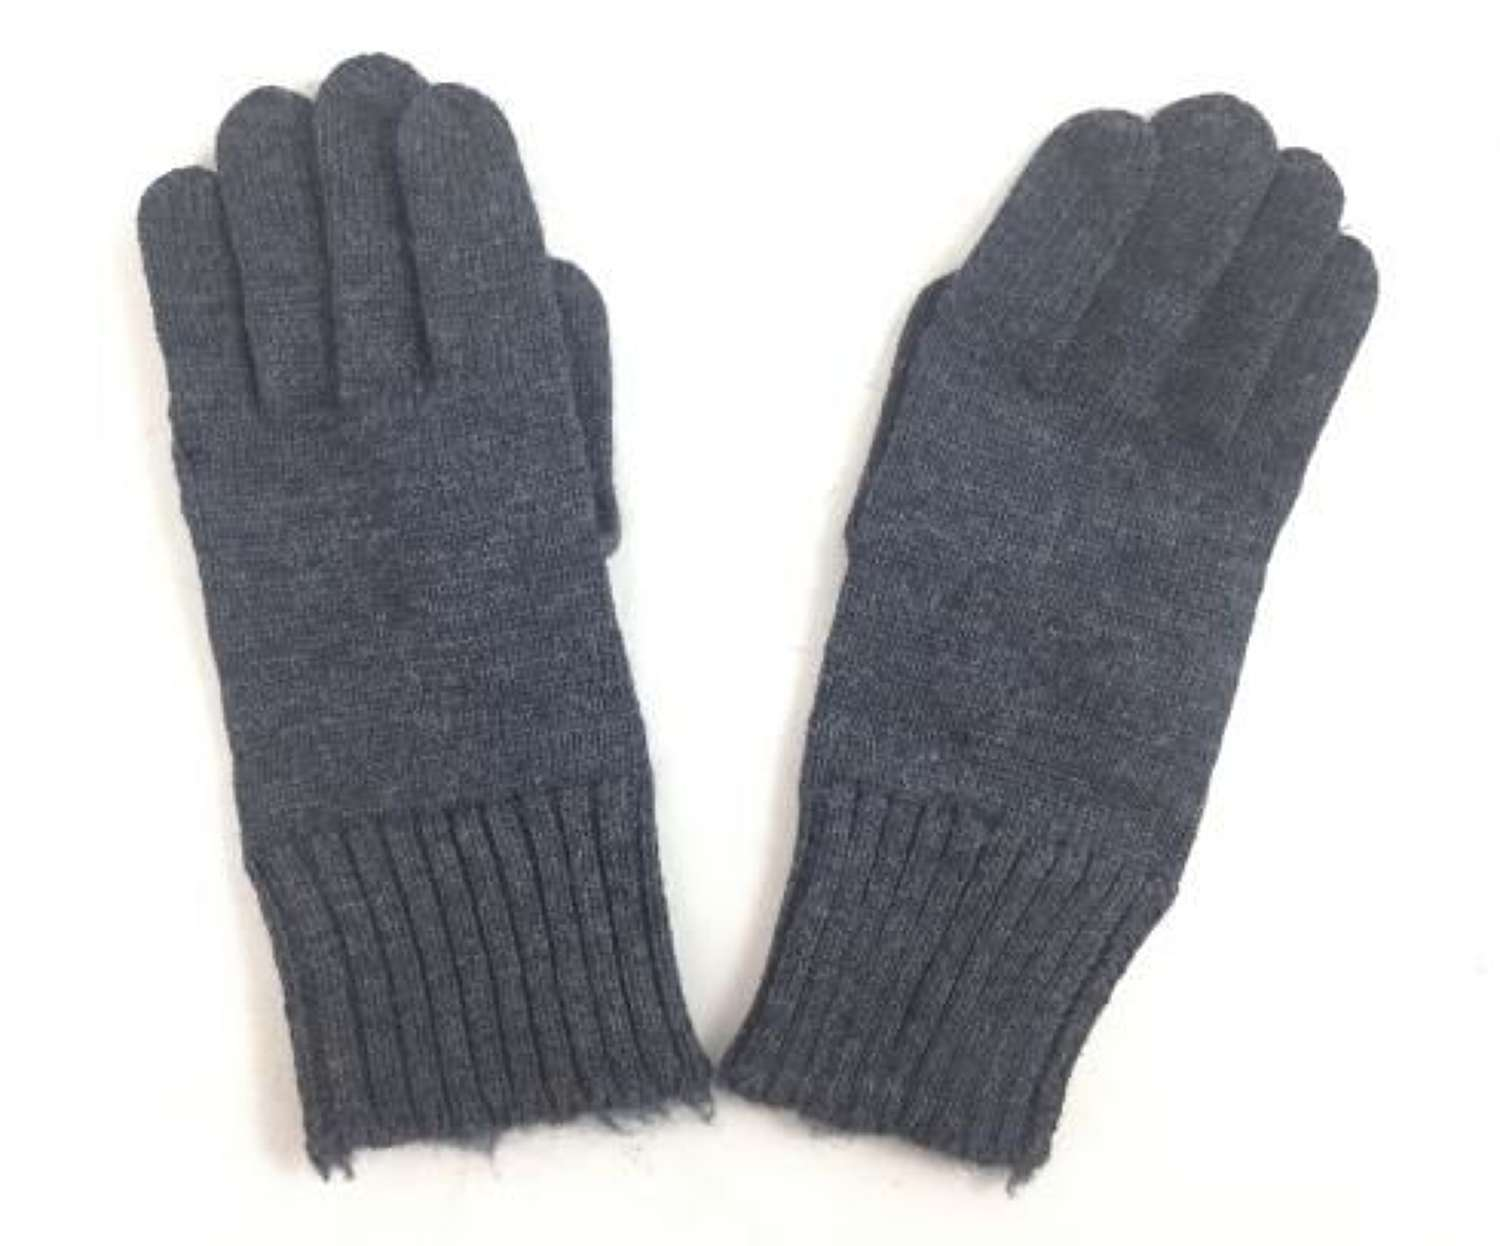 Original WW2 Period RAF Woolen Gloves